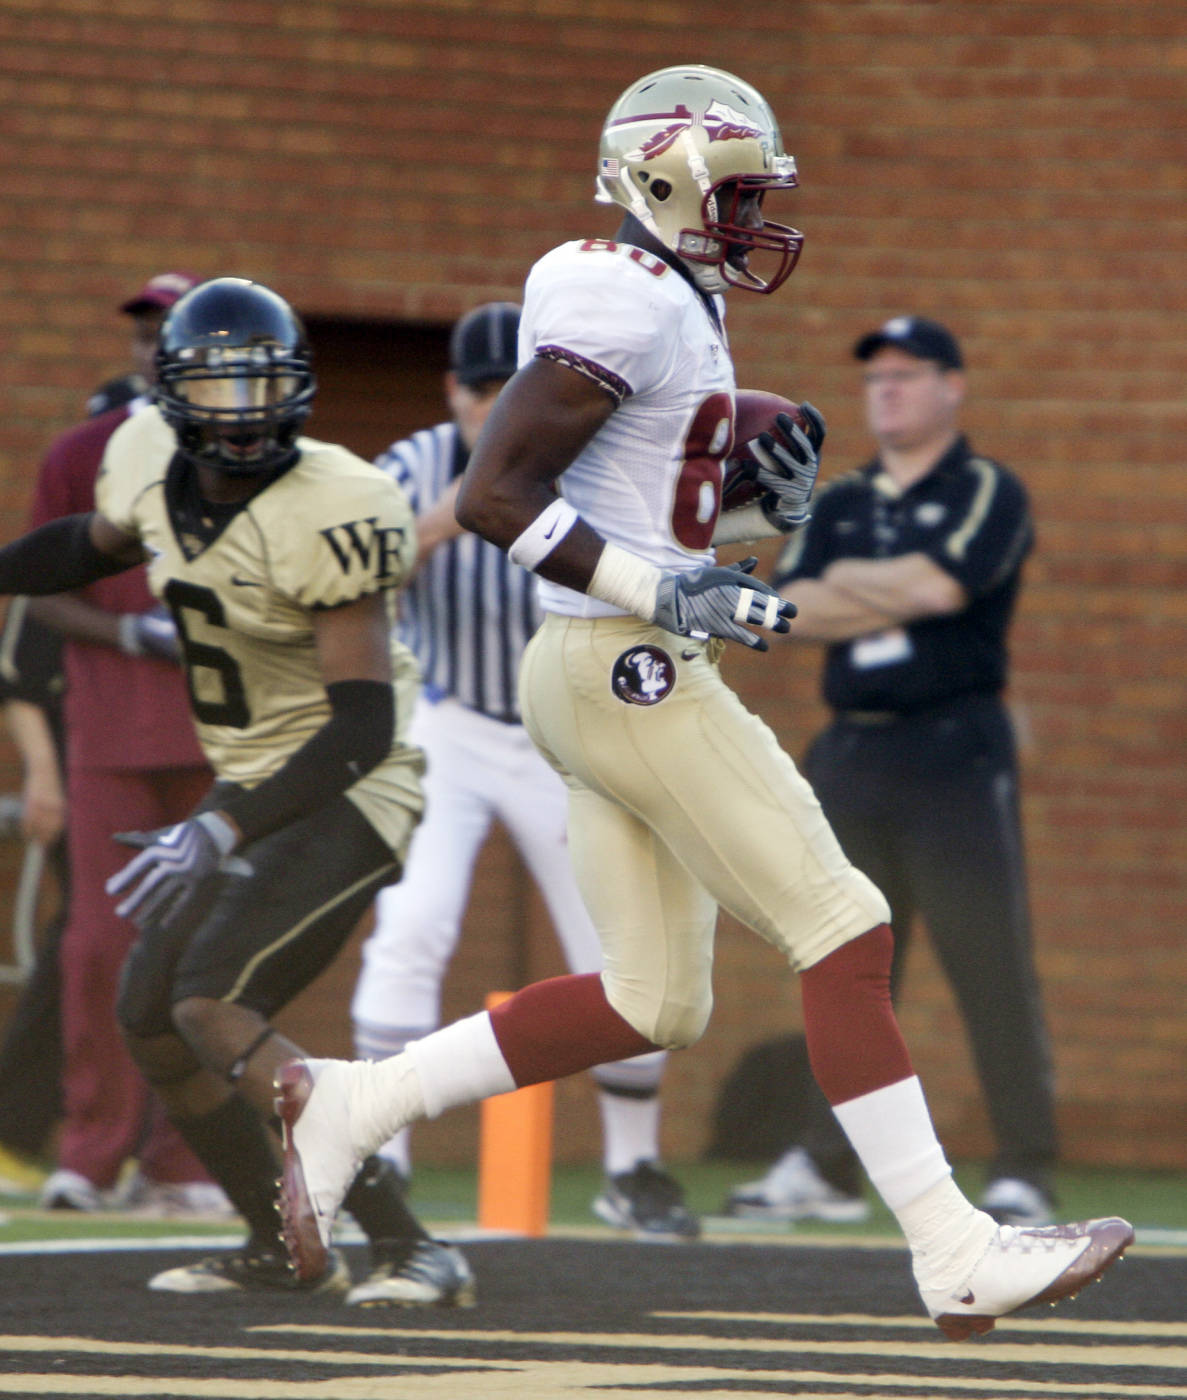 Florida State's Jarmon Fortson (80) runs into the end zone for a touchdown as Wake Forest's Kenny Okoro (6) looks on during the second half of an NCAA college football game in Winston-Salem, N.C., Saturday, Nov. 14, 2009. Florida State won, 41-28. (AP Photo/Chuck Burton)